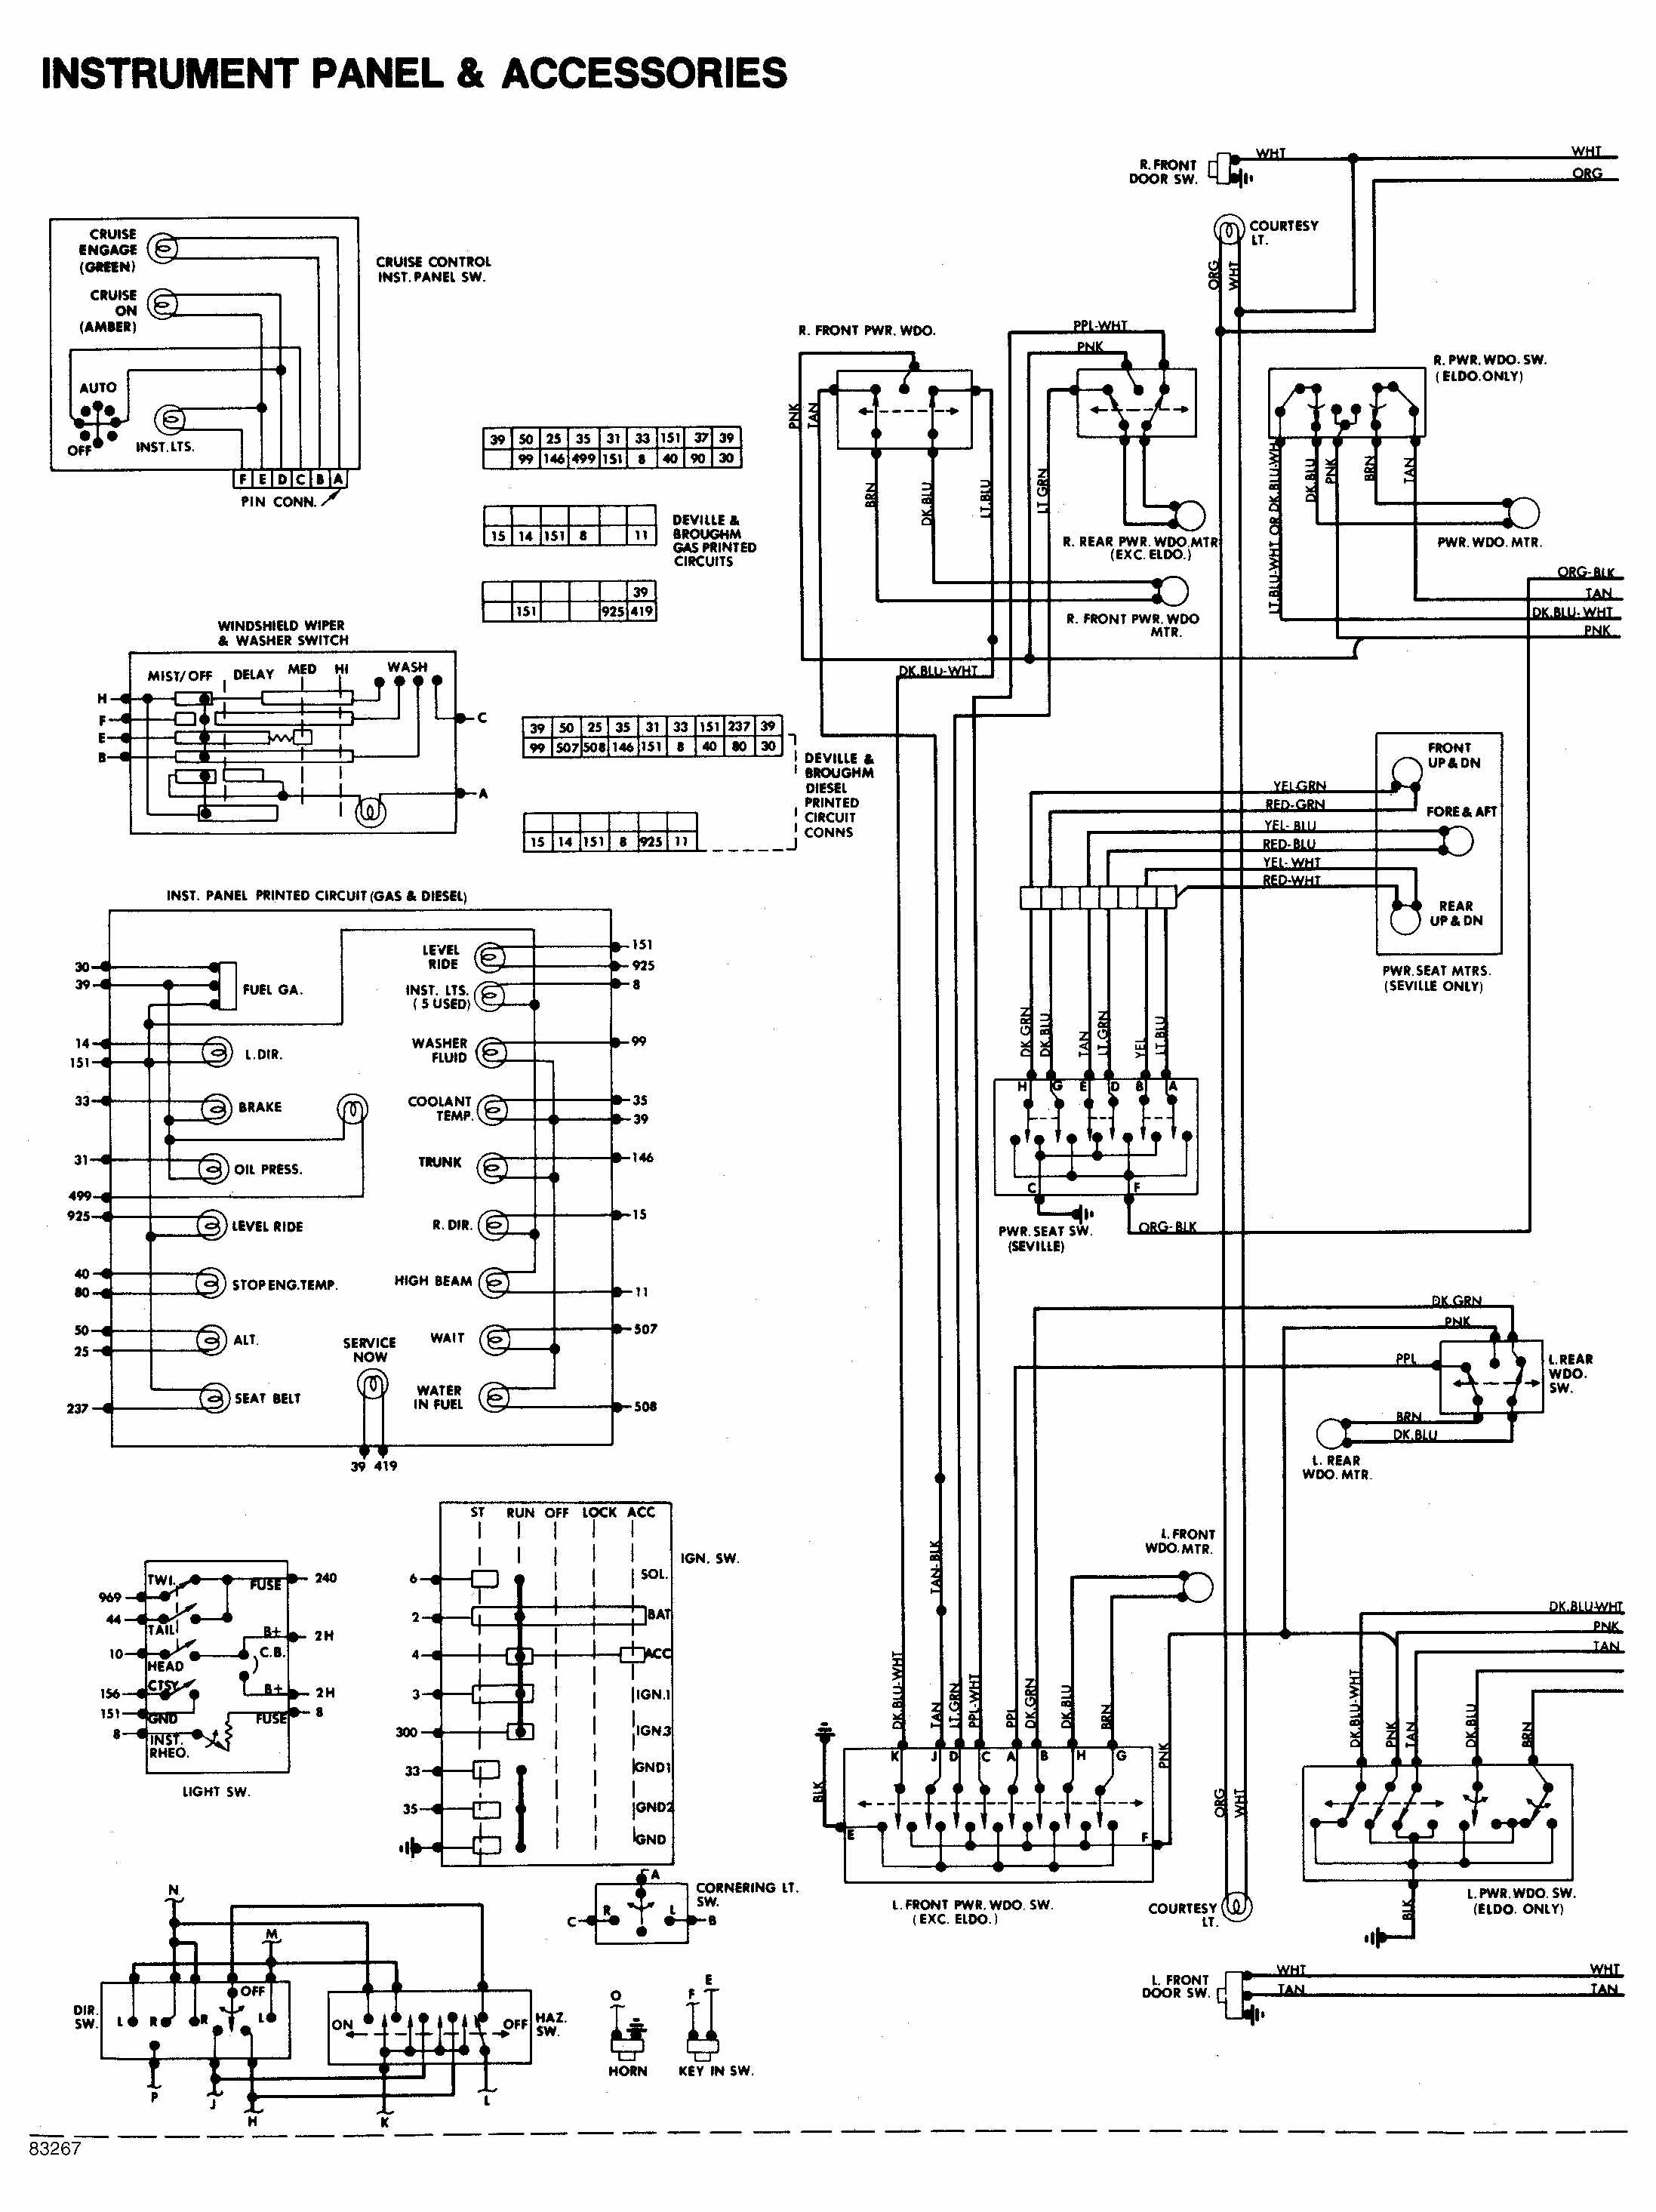 instrument panel and accessories wiring diagram of 1984 cadillac deville gm wiring diagrams gm wiring diagrams online \u2022 wiring diagrams j 1985 Buick Regal at soozxer.org